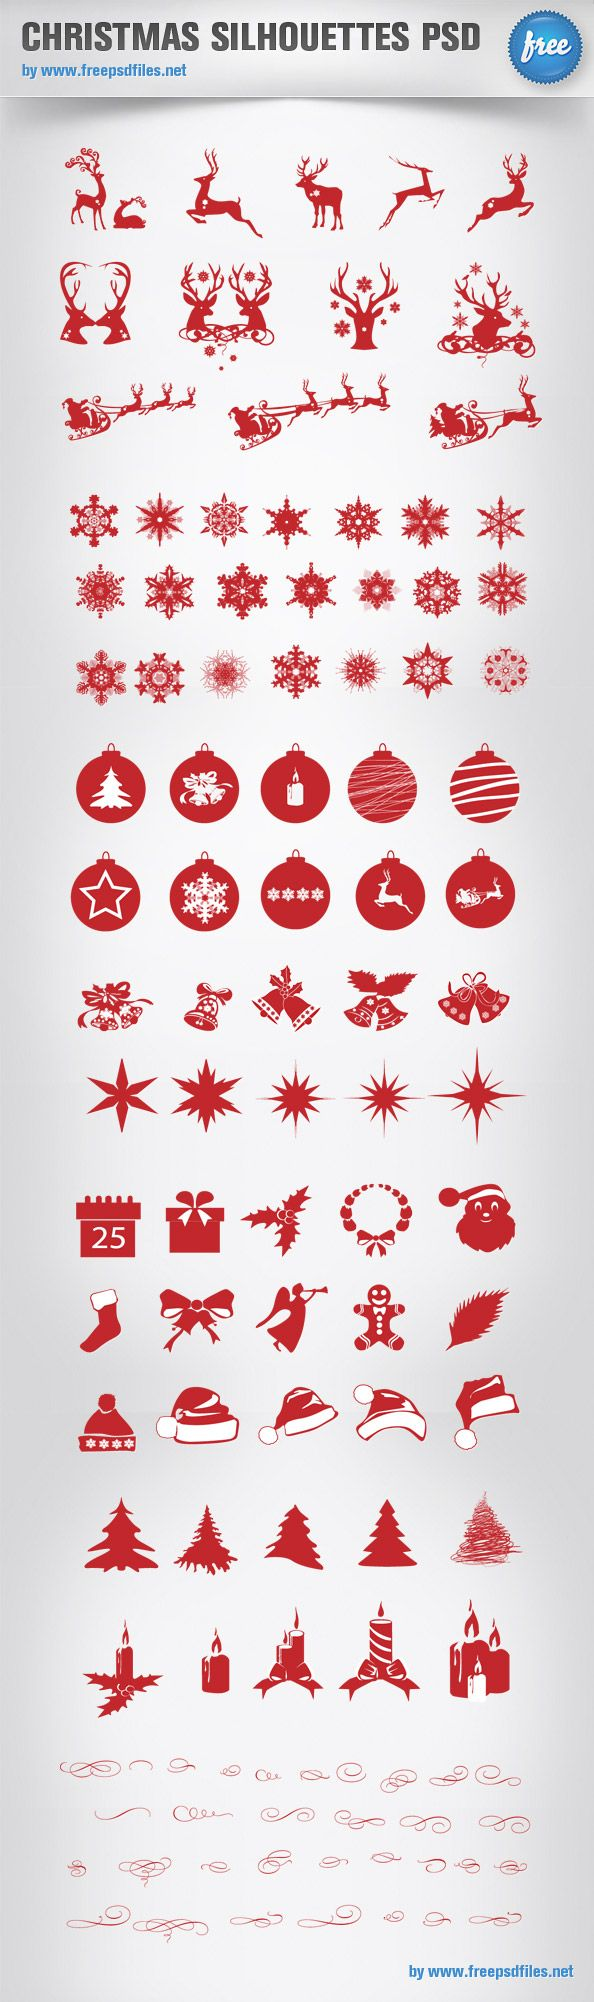 Free Christmas silhouettes pack containing more than 100 icons! That's an impressive set that will surely come in handy for your Christmas designs. Download the PSD file for free! Continue reading →